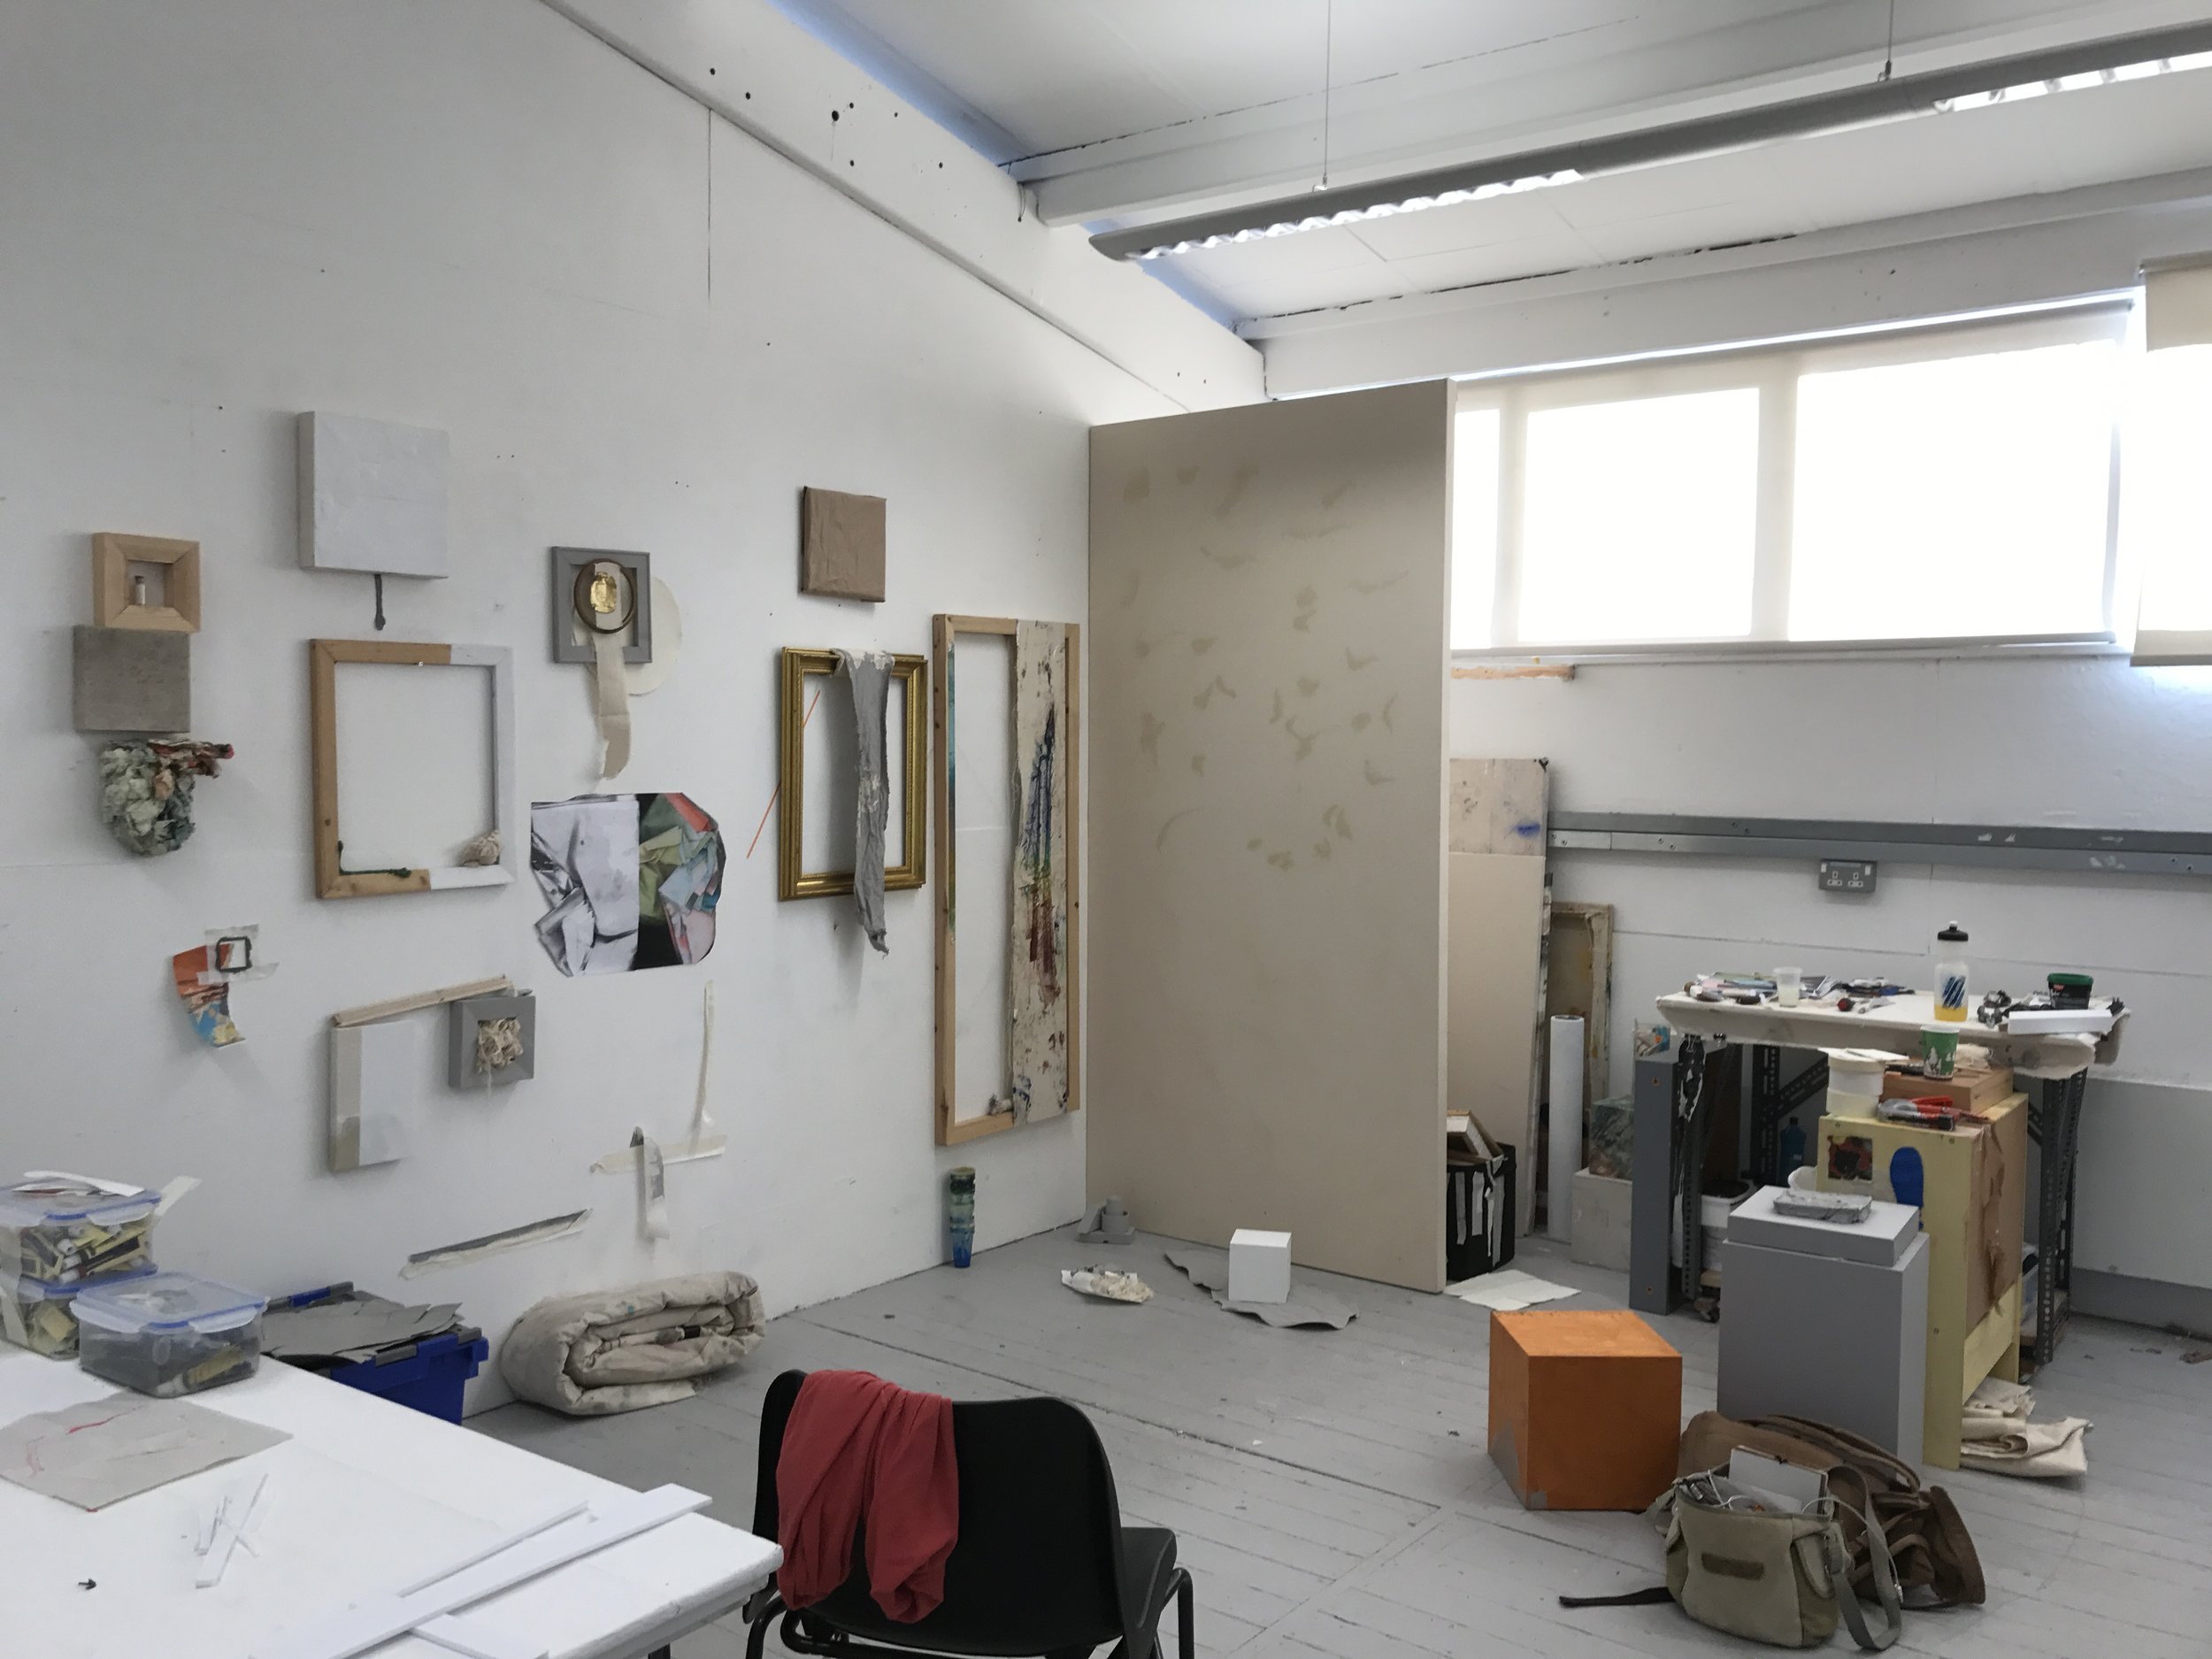 Ally McGinn (2017) [Studio documentation].  Studio View - Wednesday 25th, 11am - The wall is no longer a wall. Now it is a painting.  Ive extended the space behind the wall, and reinforced it. Im reluctant to screw through the canvas, yet.